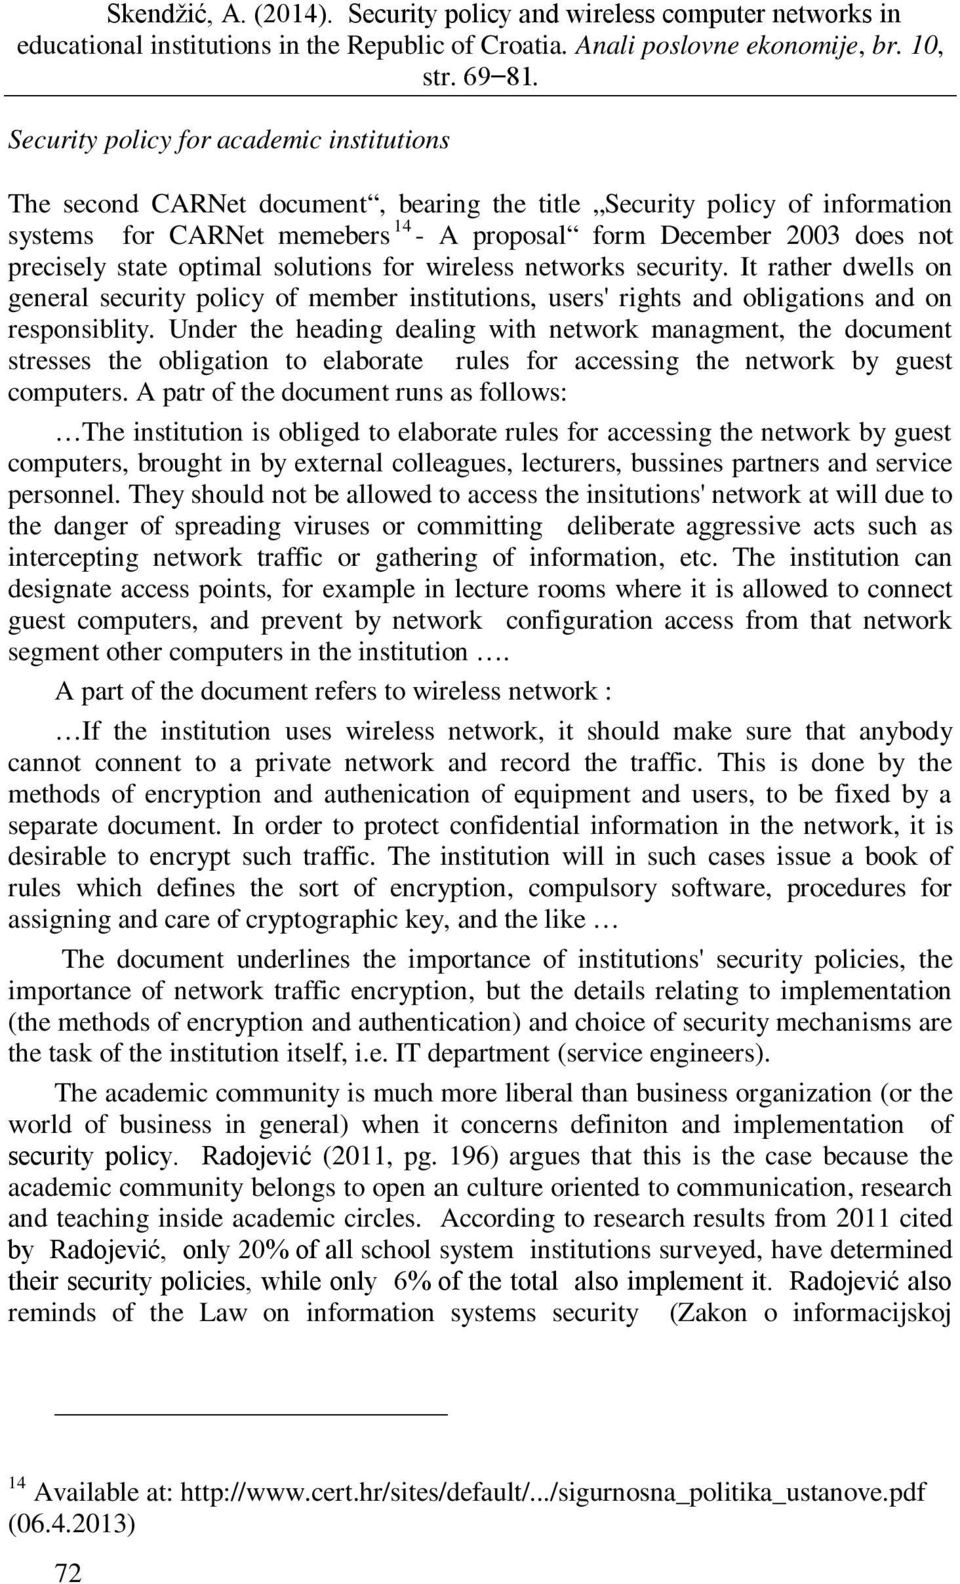 Under the heading dealing with network managment, the document stresses the obligation to elaborate rules for accessing the network by guest computers.